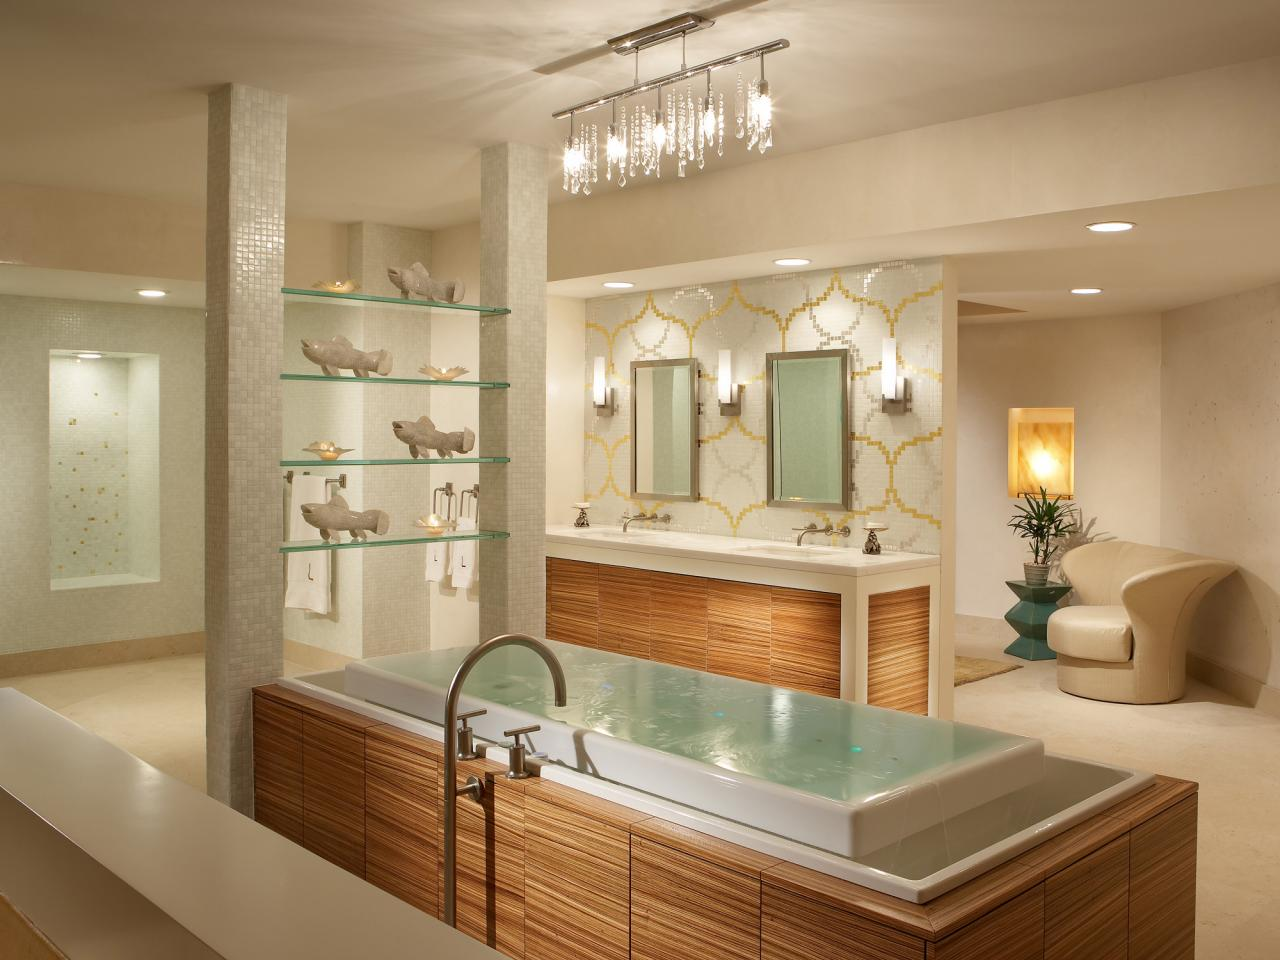 Interior Bathroom Layout choosing a bathroom layout hgtv layout